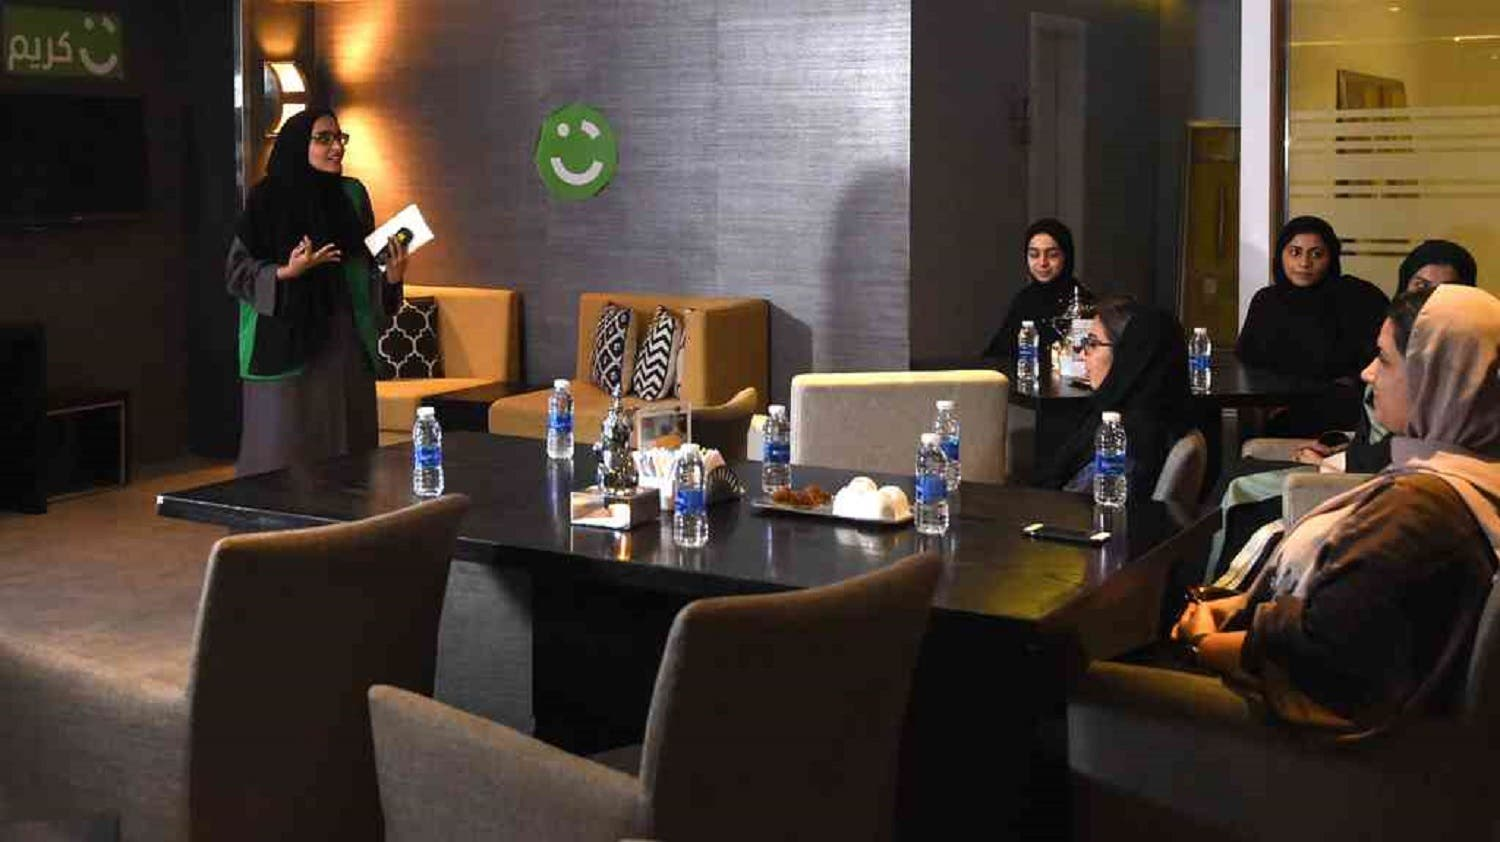 An employee of Careem holds a training session for new female drivers at the firm's Saudi offices in Khobar City. (AFP)